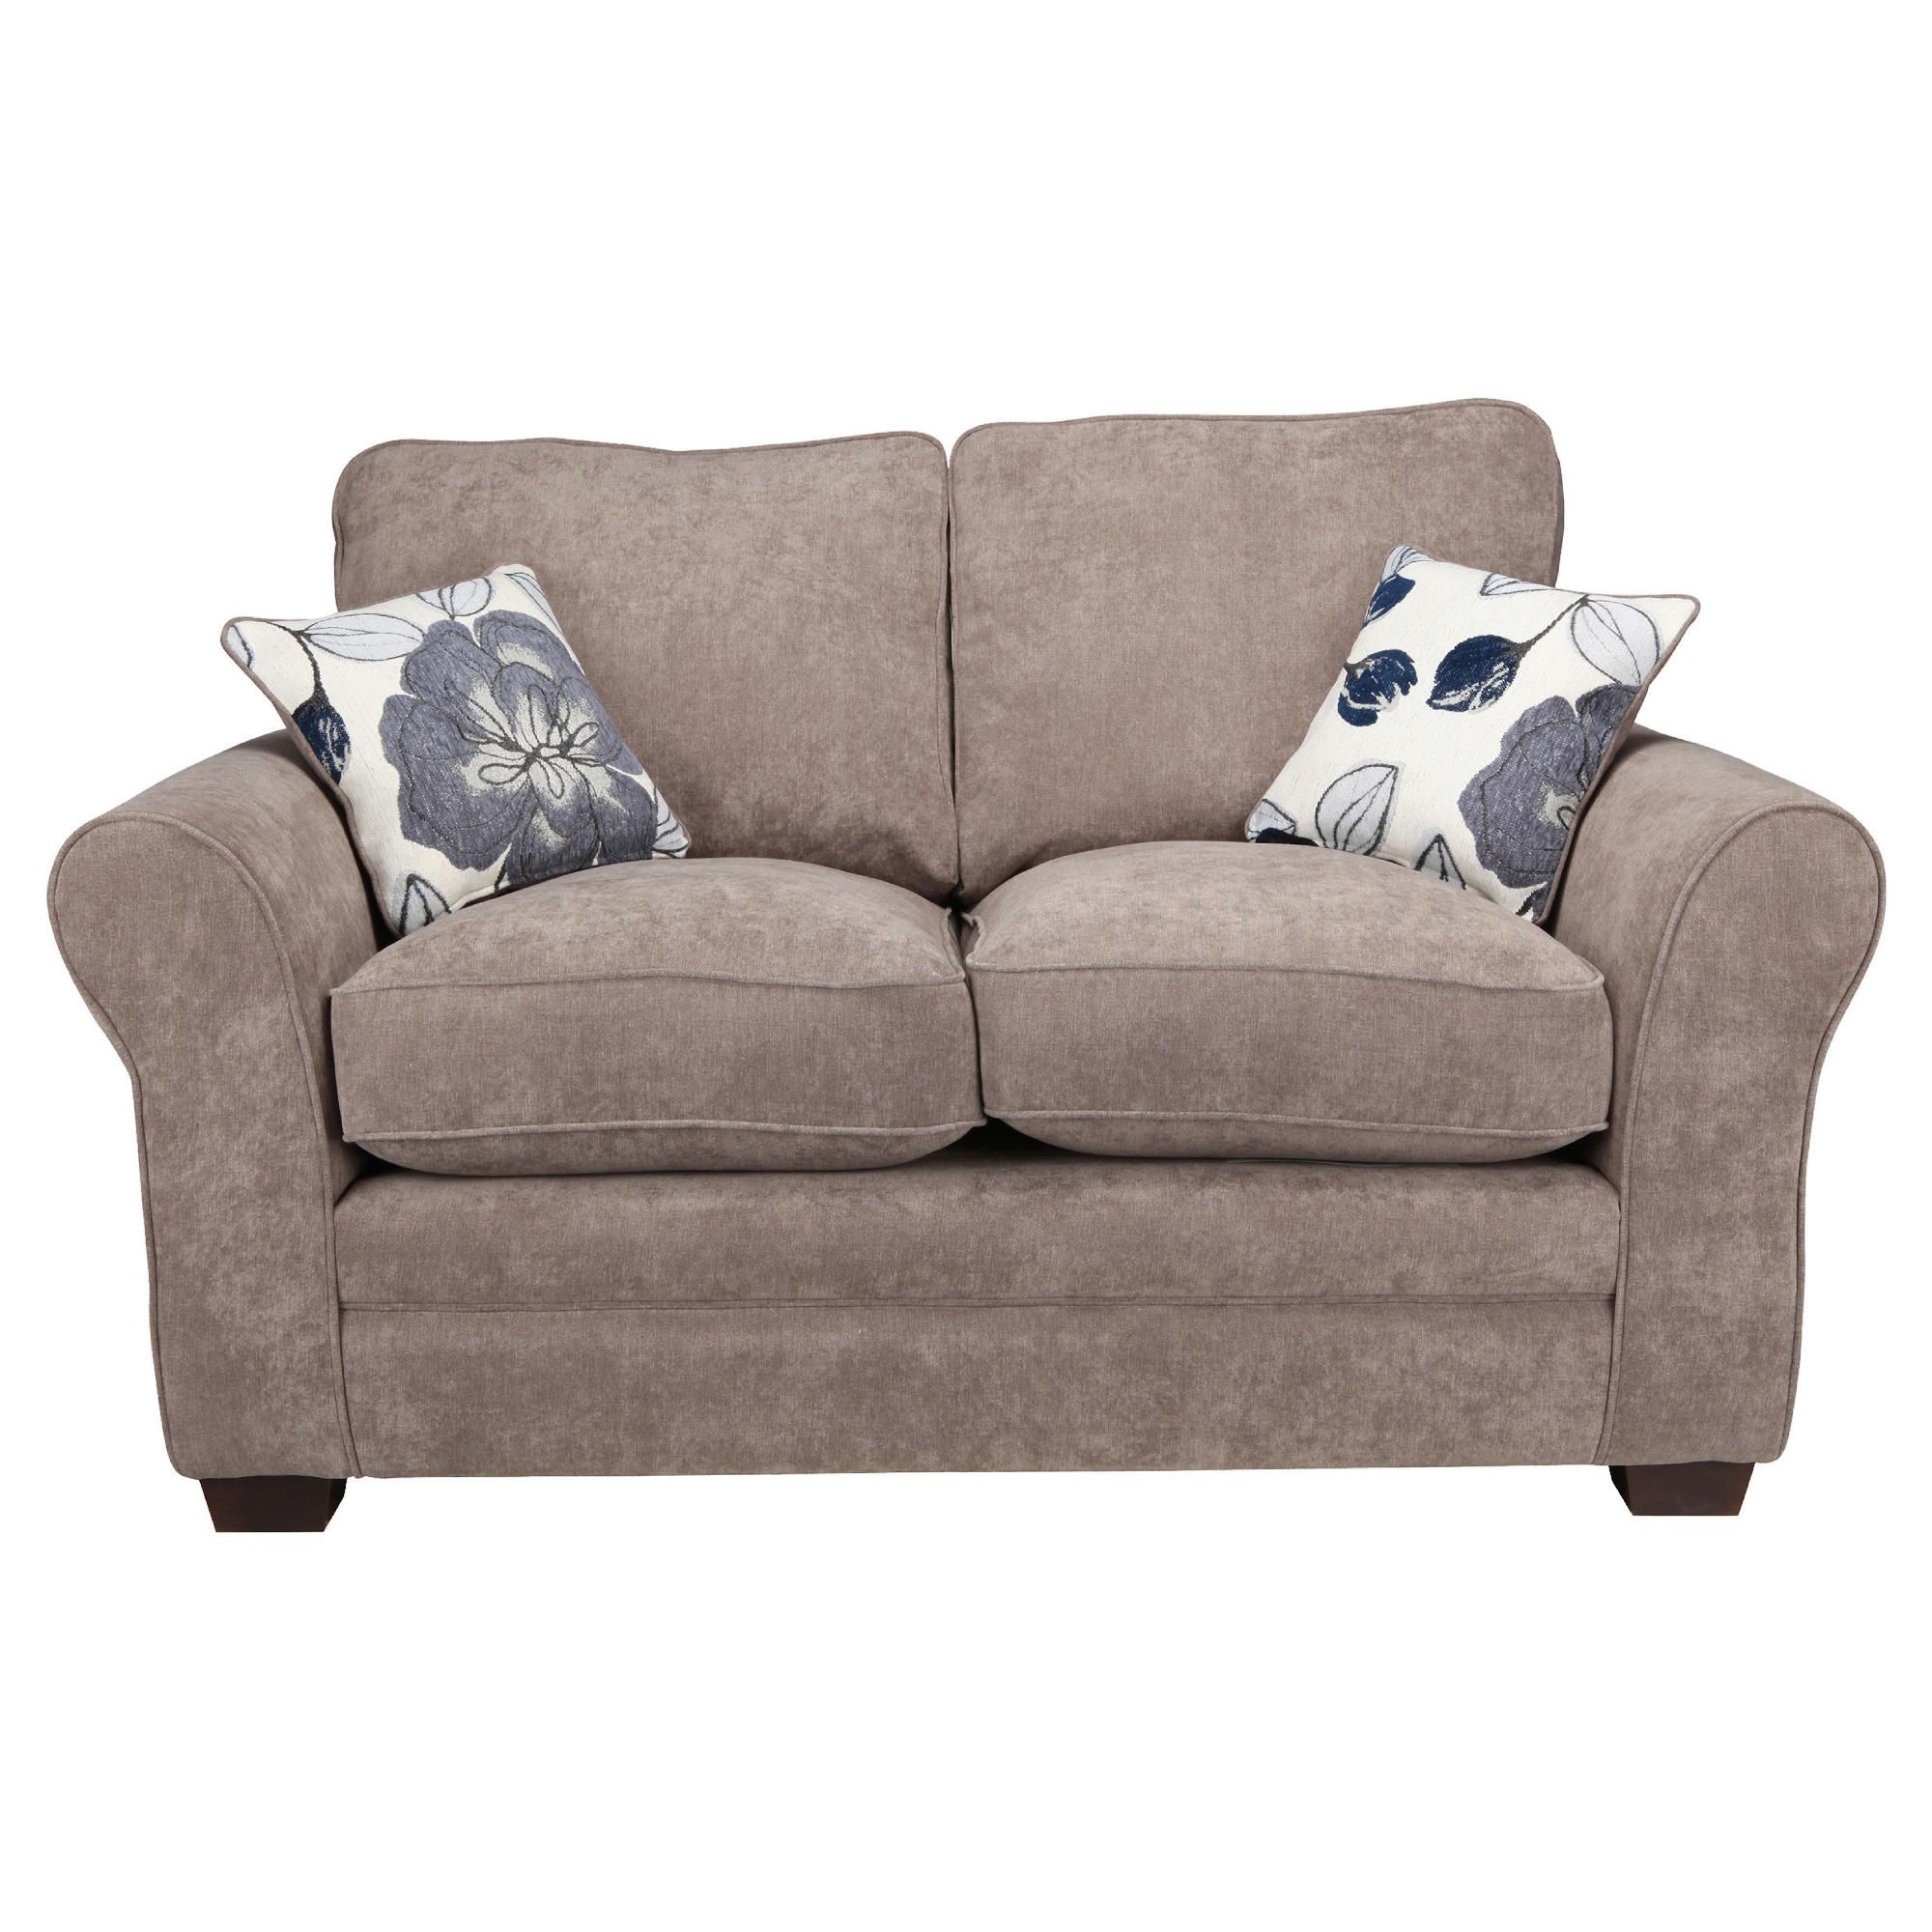 Amelie Small Standard Back Fabric Sofa Charcoal at Tesco Direct